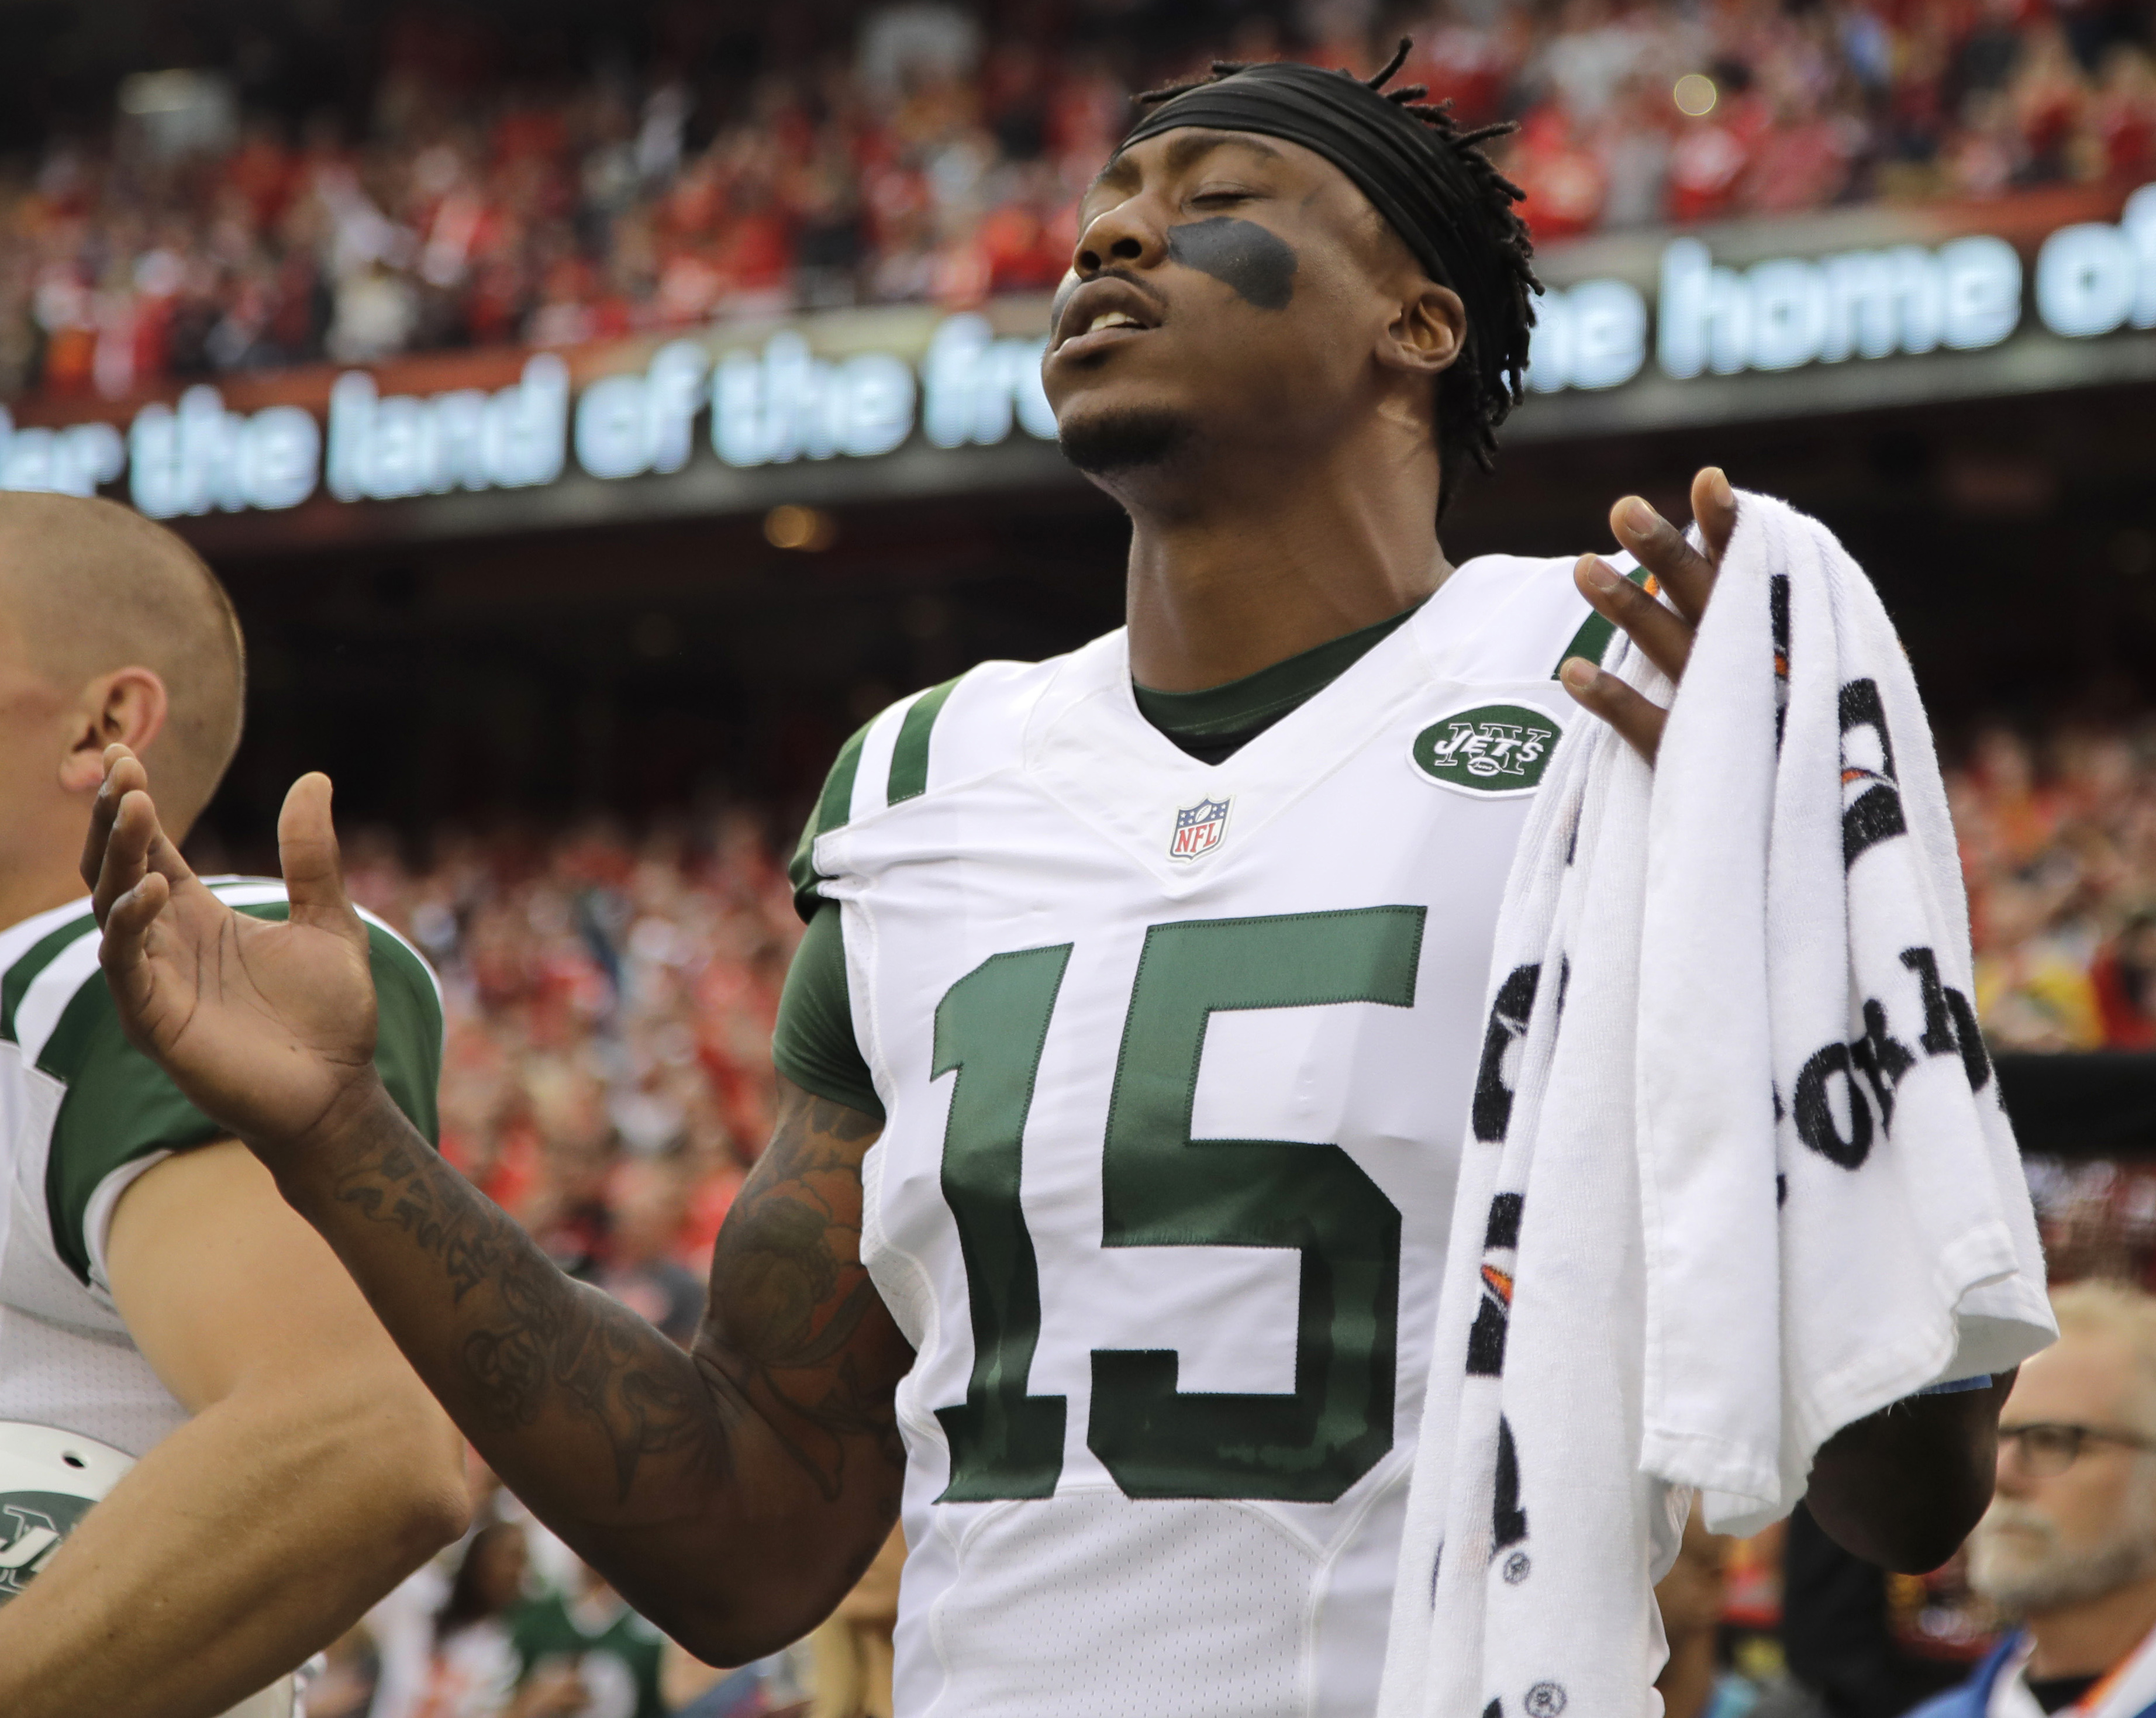 FILE - In this Sept. 25, 2016, file photo, New York Jets wide receiver Brandon Marshall (15) gestures during the playing of the national anthem before an NFL football game against the Kansas City Chiefs, in Kansas City, Mo. The Jets (3-9) take their four-